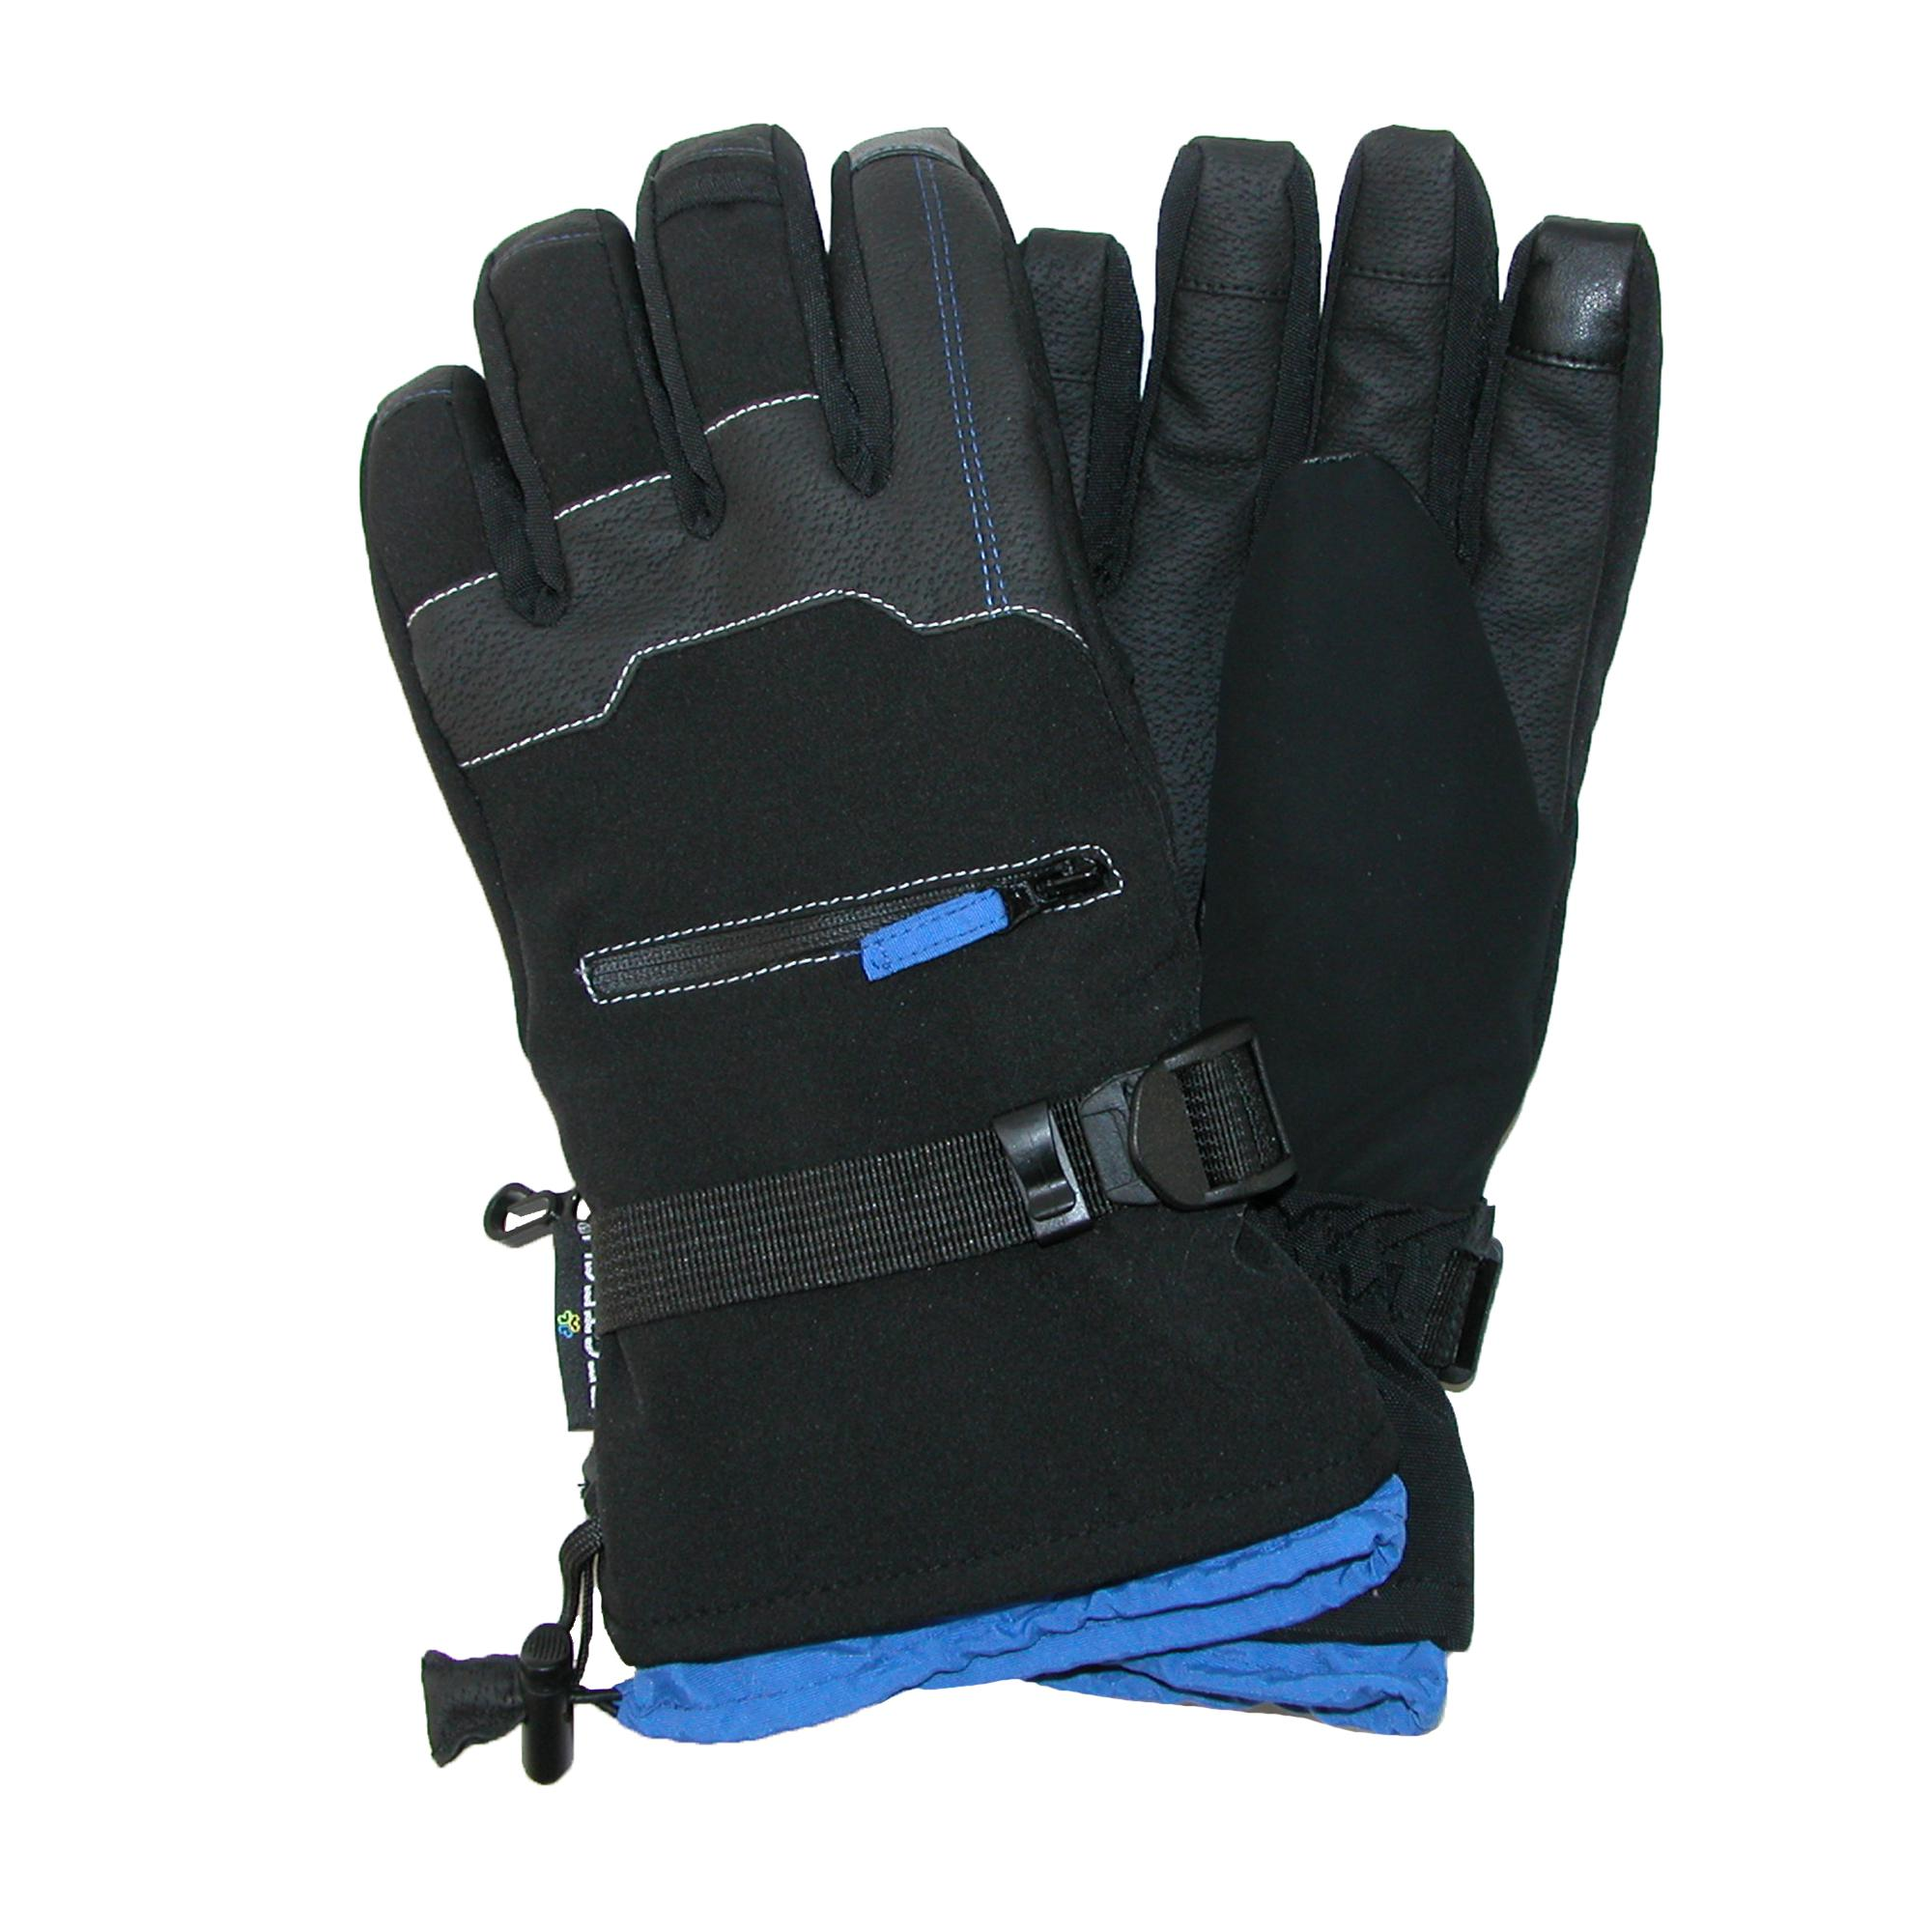 Grand Sierra Mens Bec-tec Texting Snow Glove With Zippered Pocket